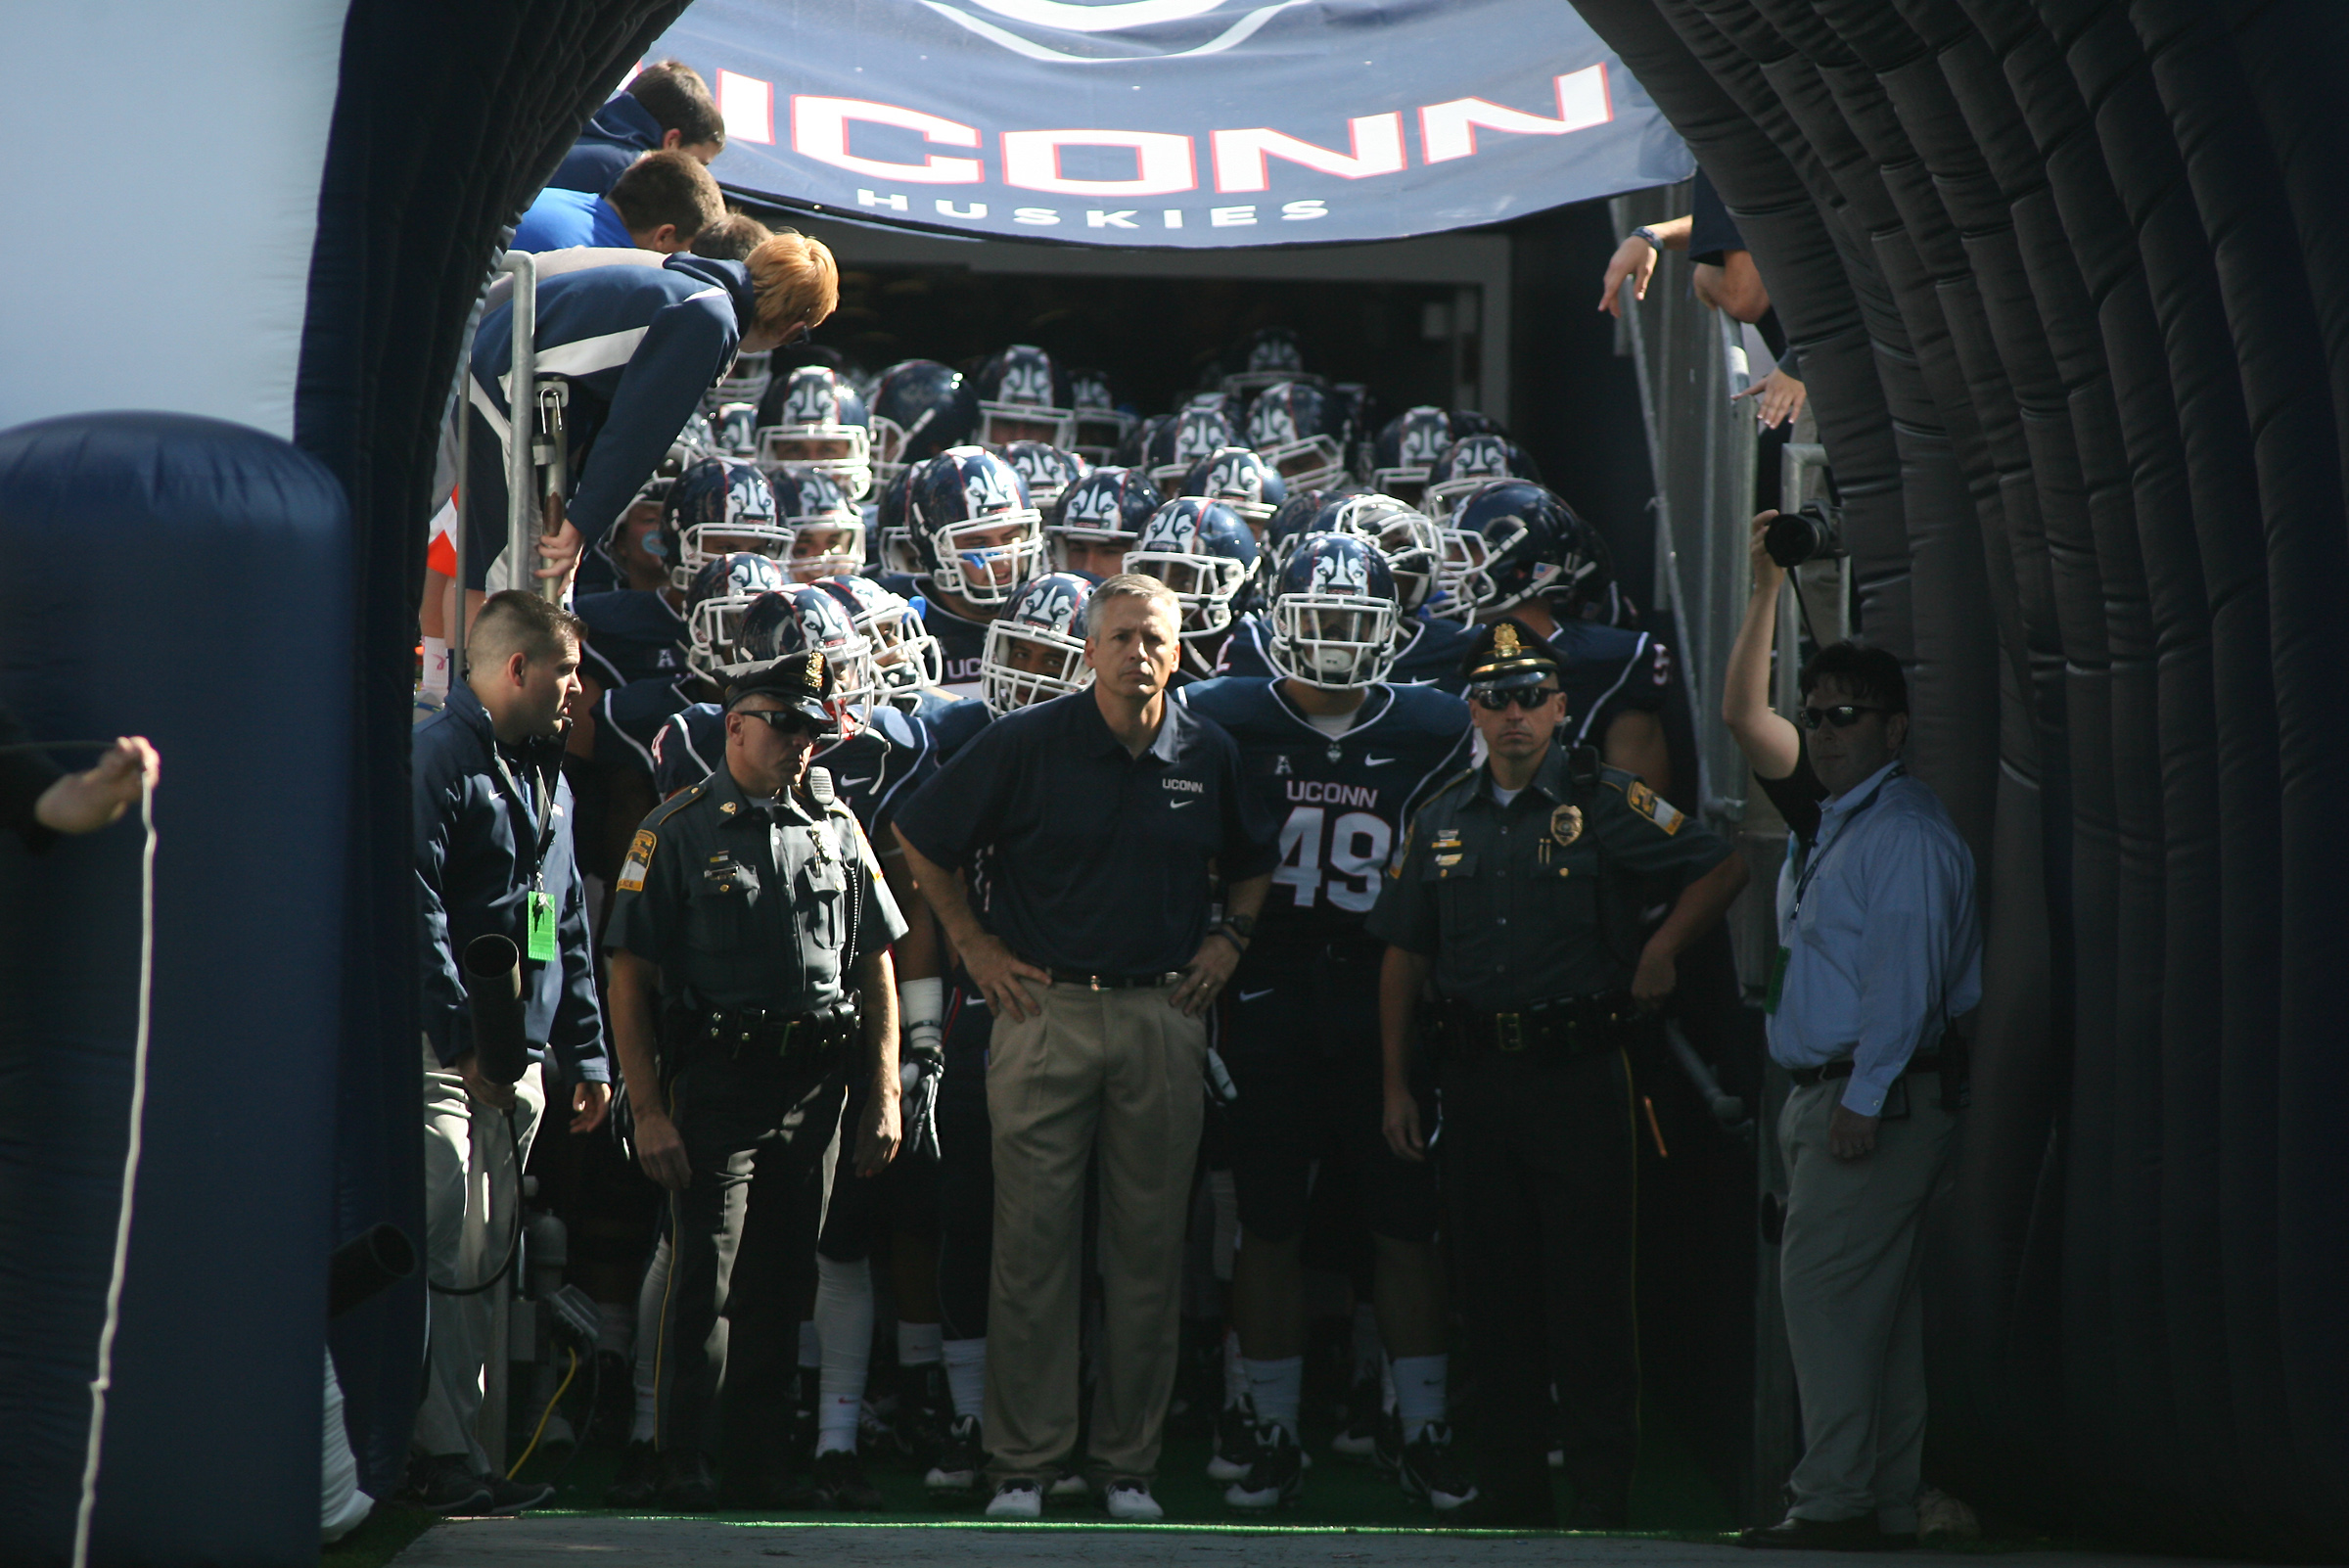 UConn's T.J. Weist waits to take the field with his team for his first game as interim Head Coach.